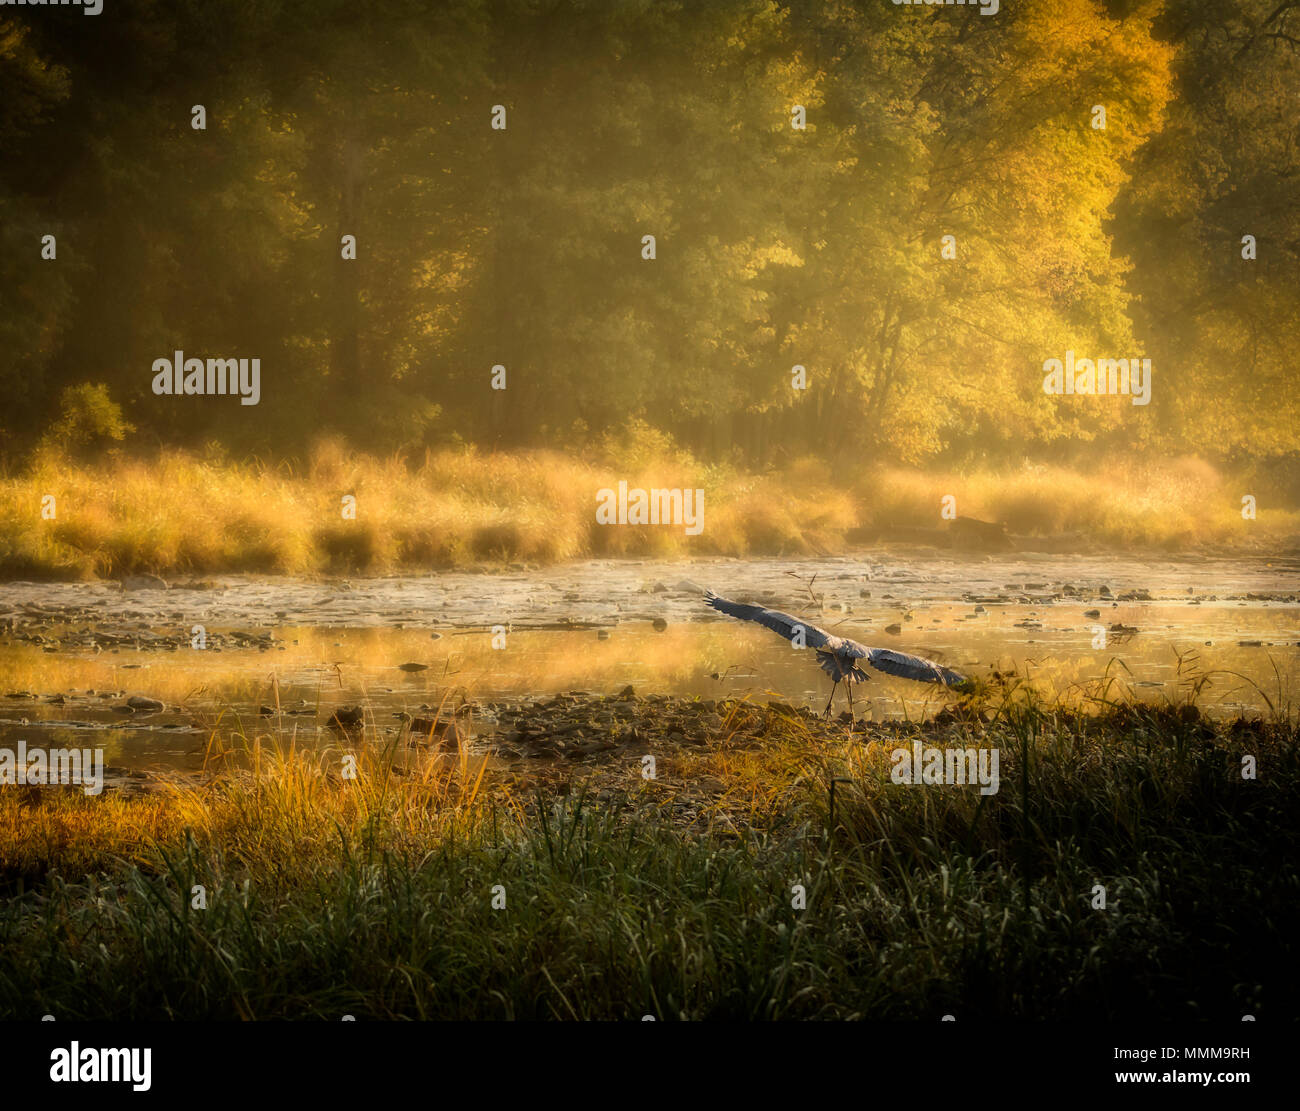 Taken on the Scenic Maumee River in Northwest Ohio. A Great Blue Heron flying low over the river which is surrounded by trees with autumn colors. - Stock Image